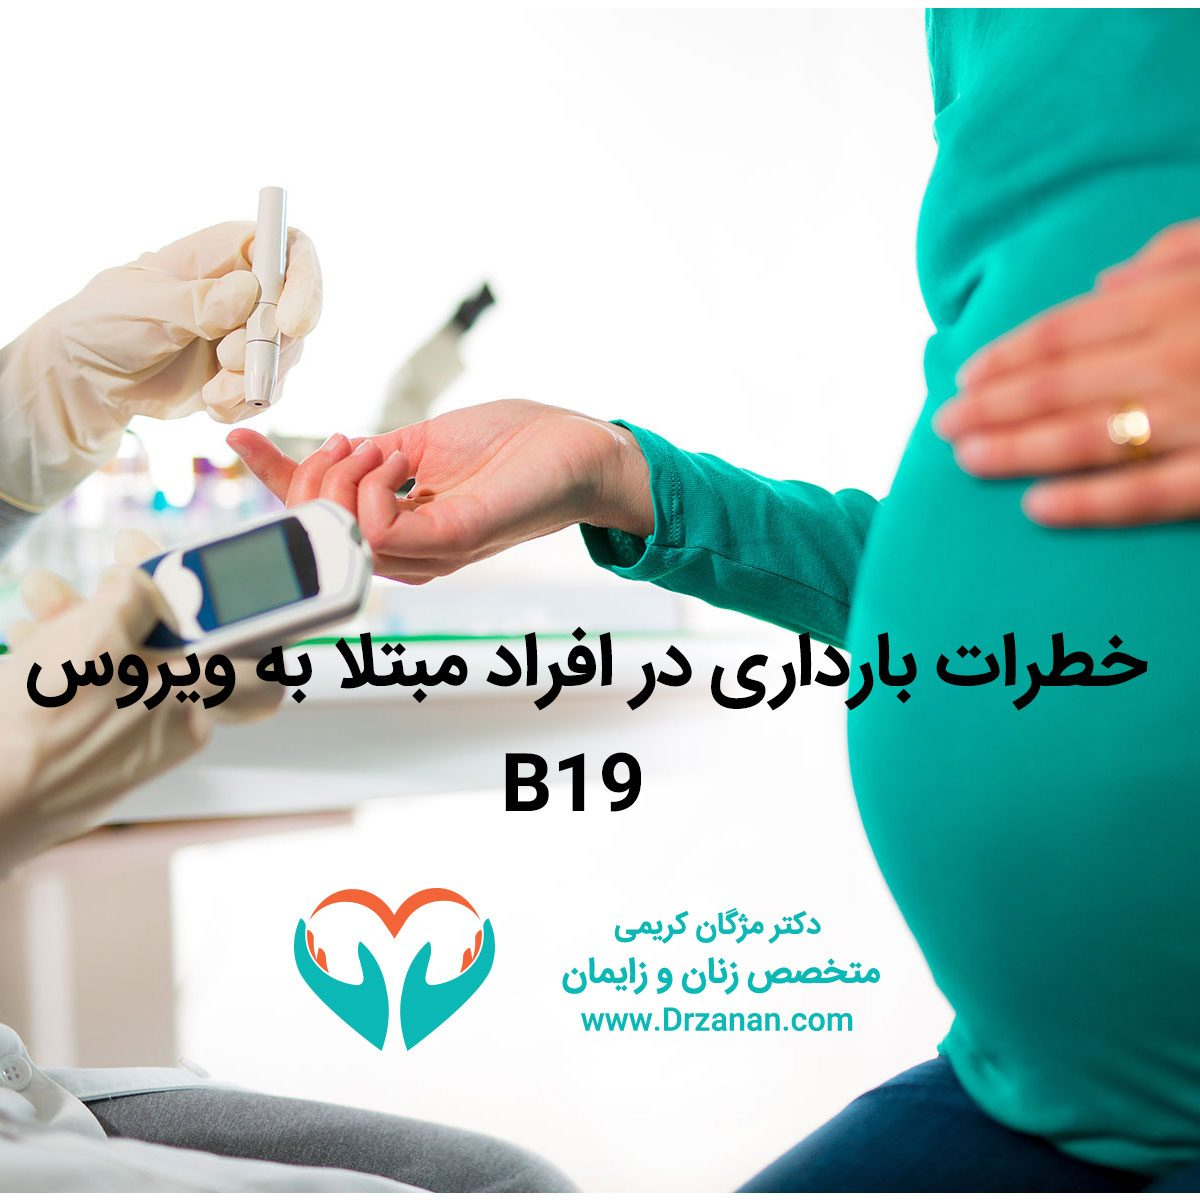 pregnancy-risks-in-people-with-b19-virus-1200x1200.jpg